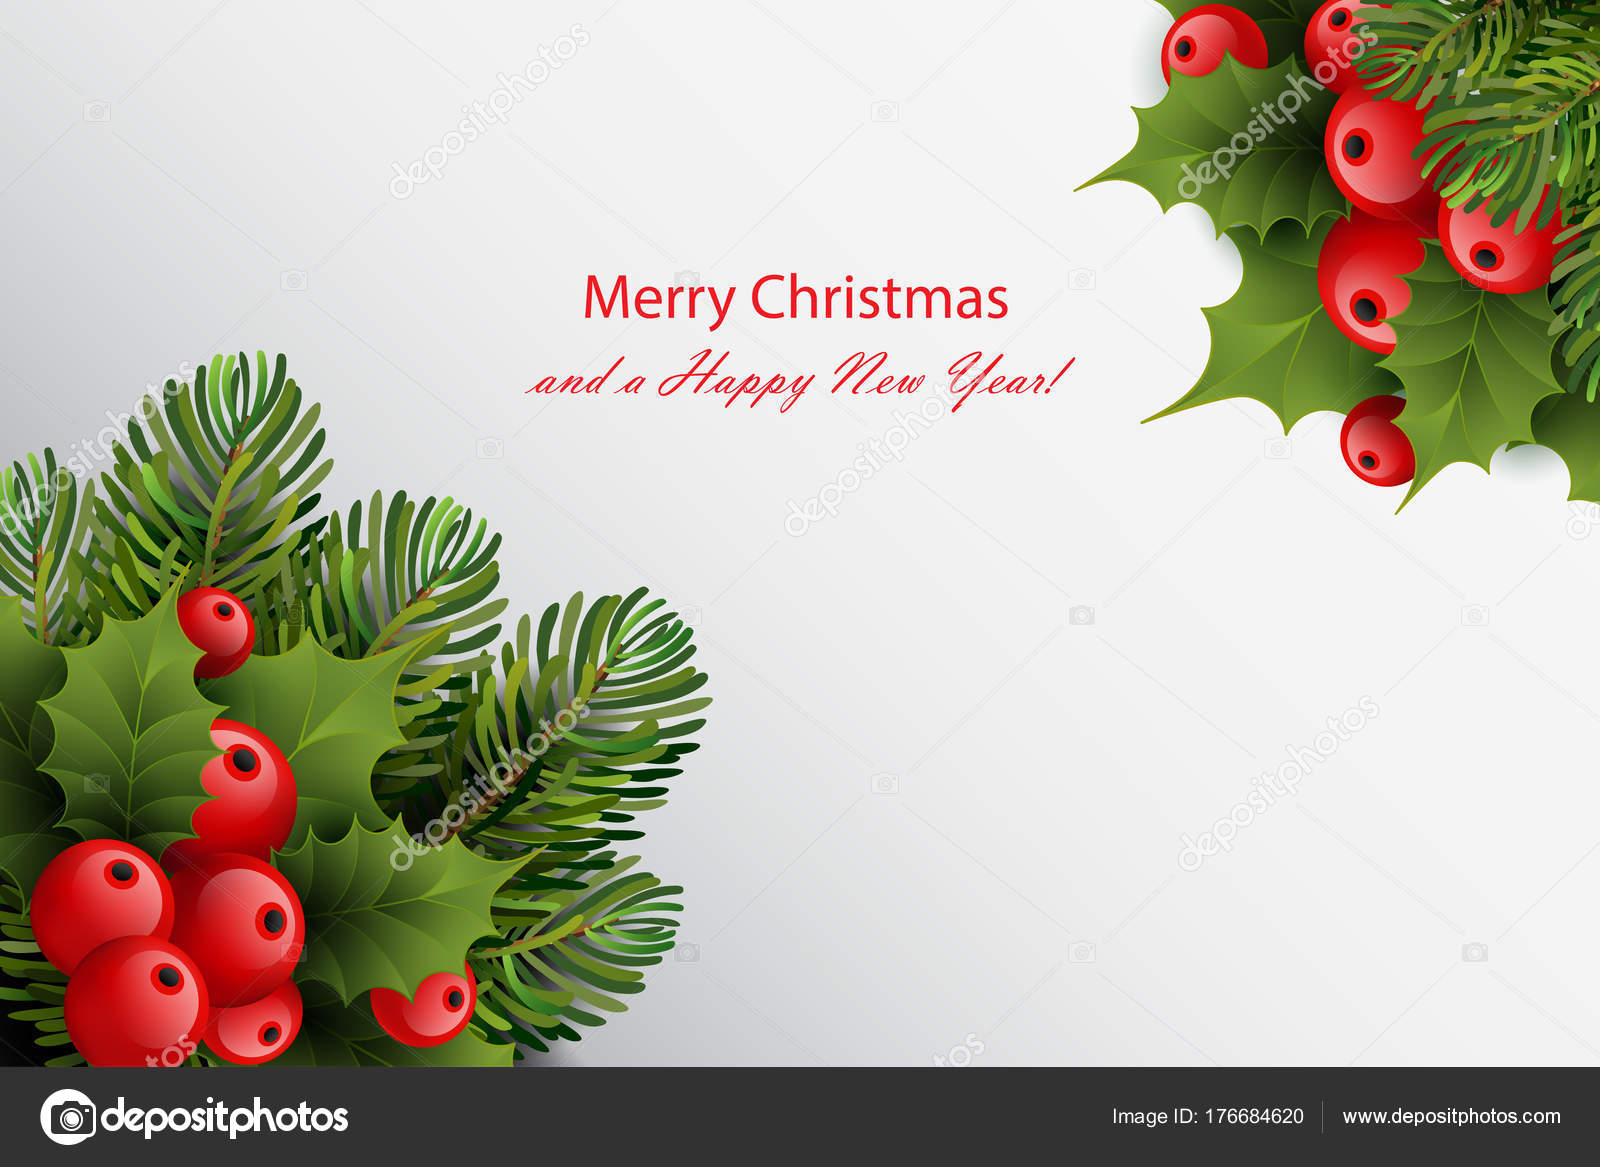 Christmas Card Template.Christmas Card Template With Ilex Holly Red Berries And